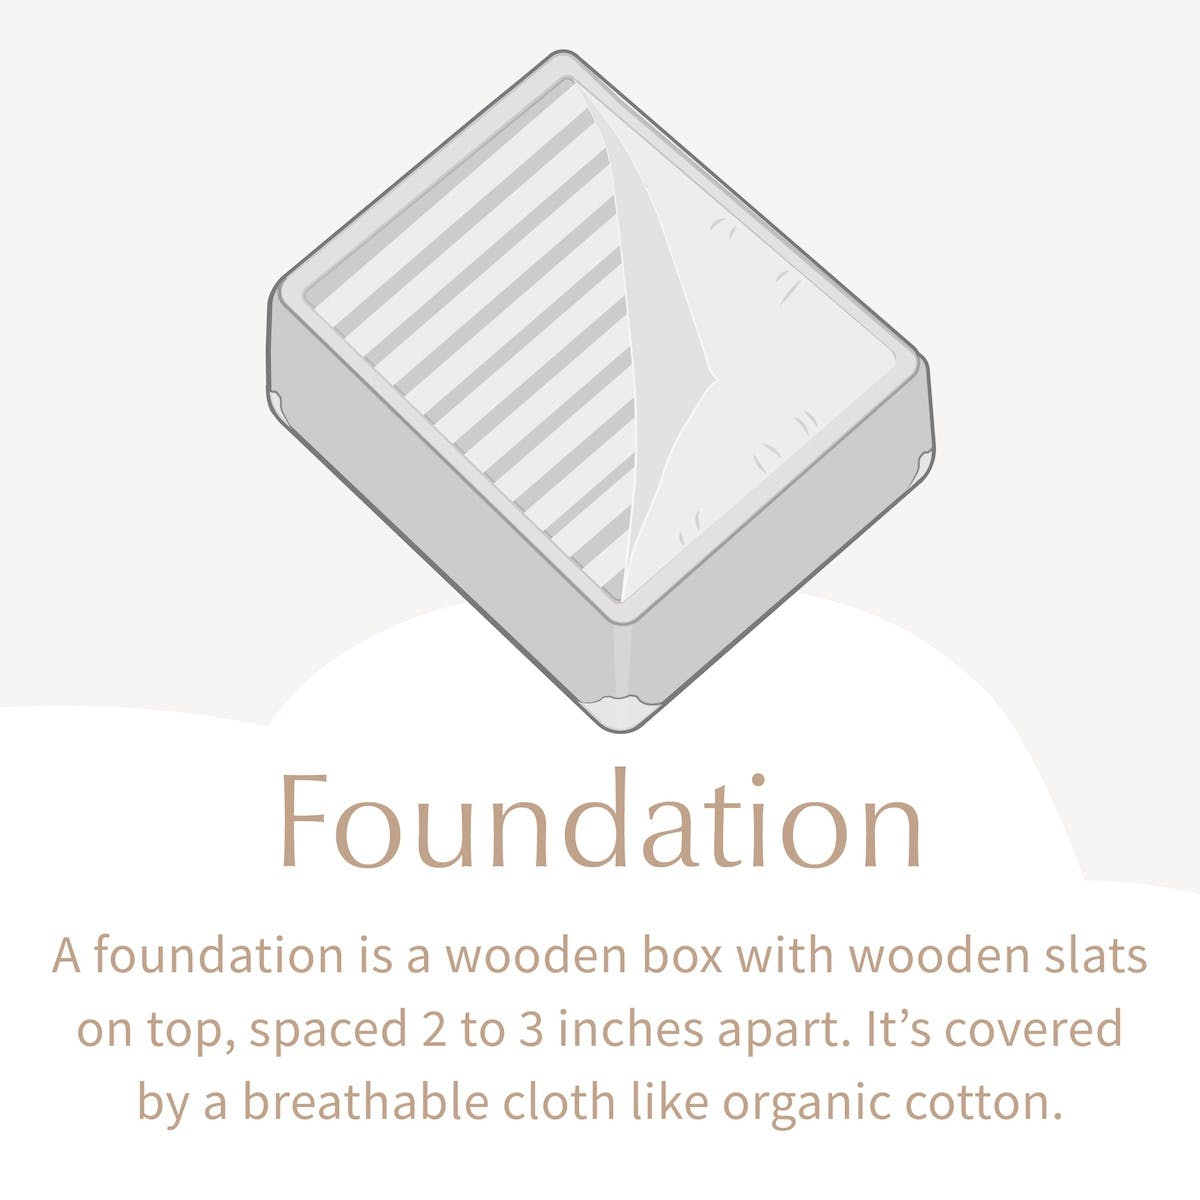 Illustration of a foundation with a description underneath: